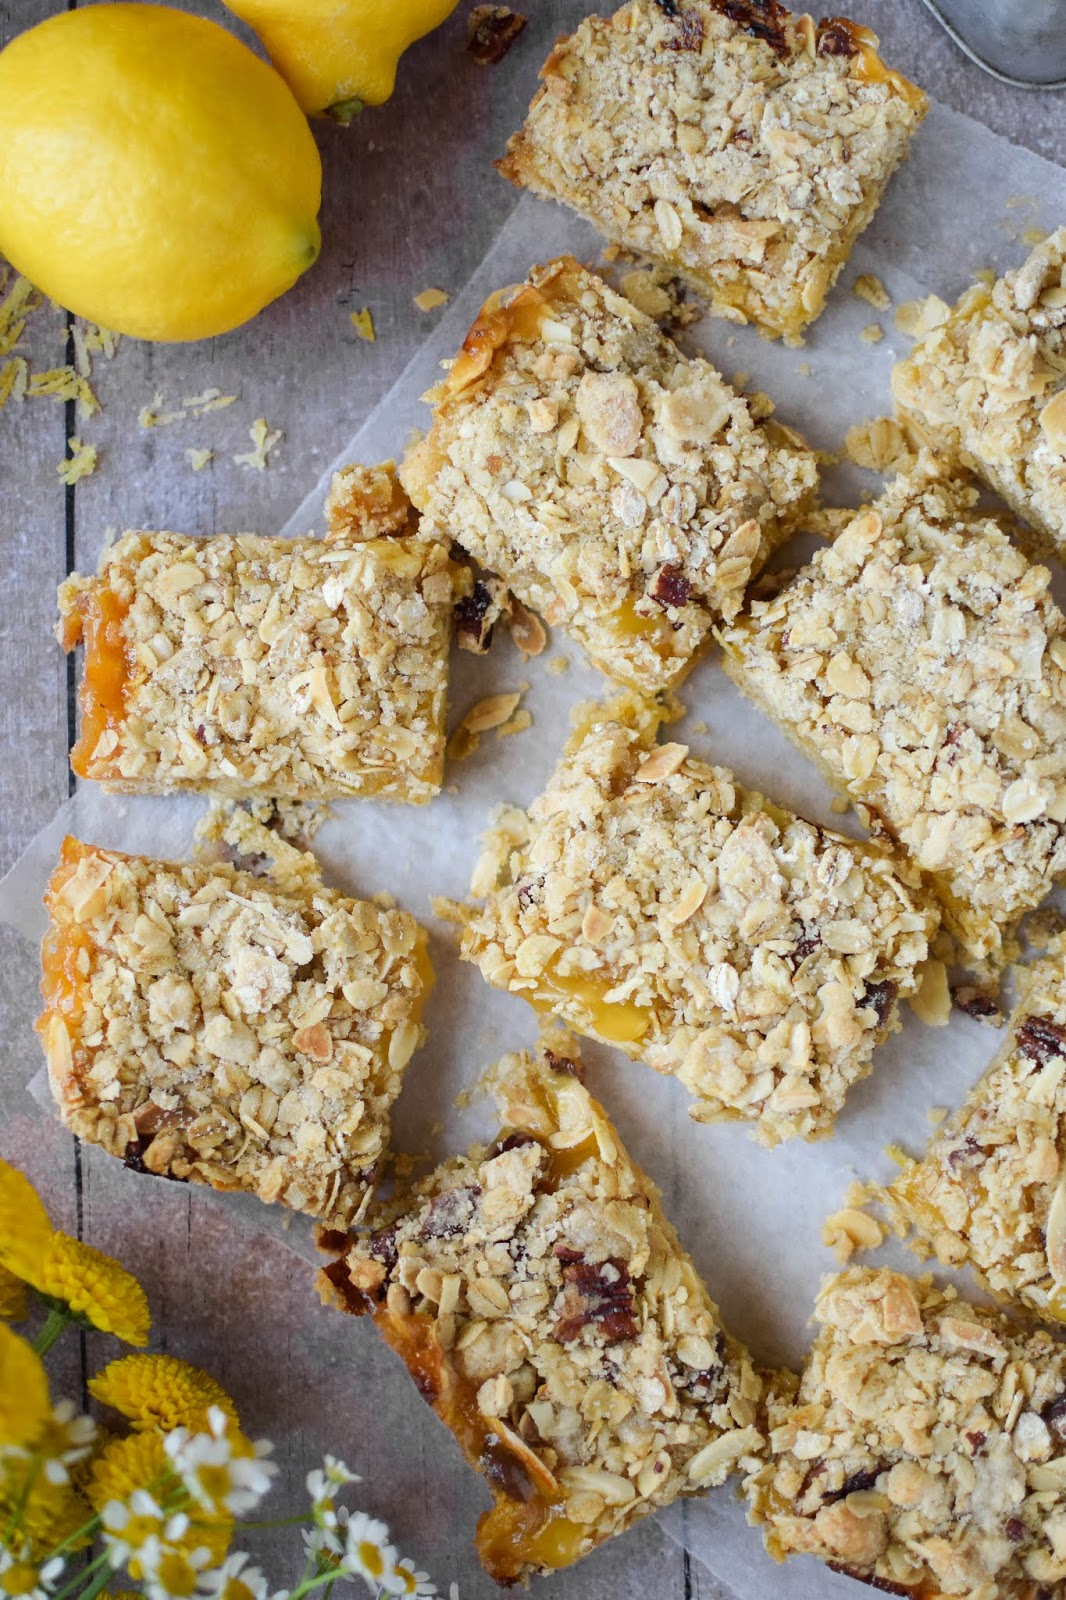 These deliciously zingy, lemon curd crumble bars are to die for. Bright and tangy lemon curd sandwiched between a buttery biscuit base and a nutty, oaty crumble layer. Simply brew up a pot of Earl Grey and enjoy.